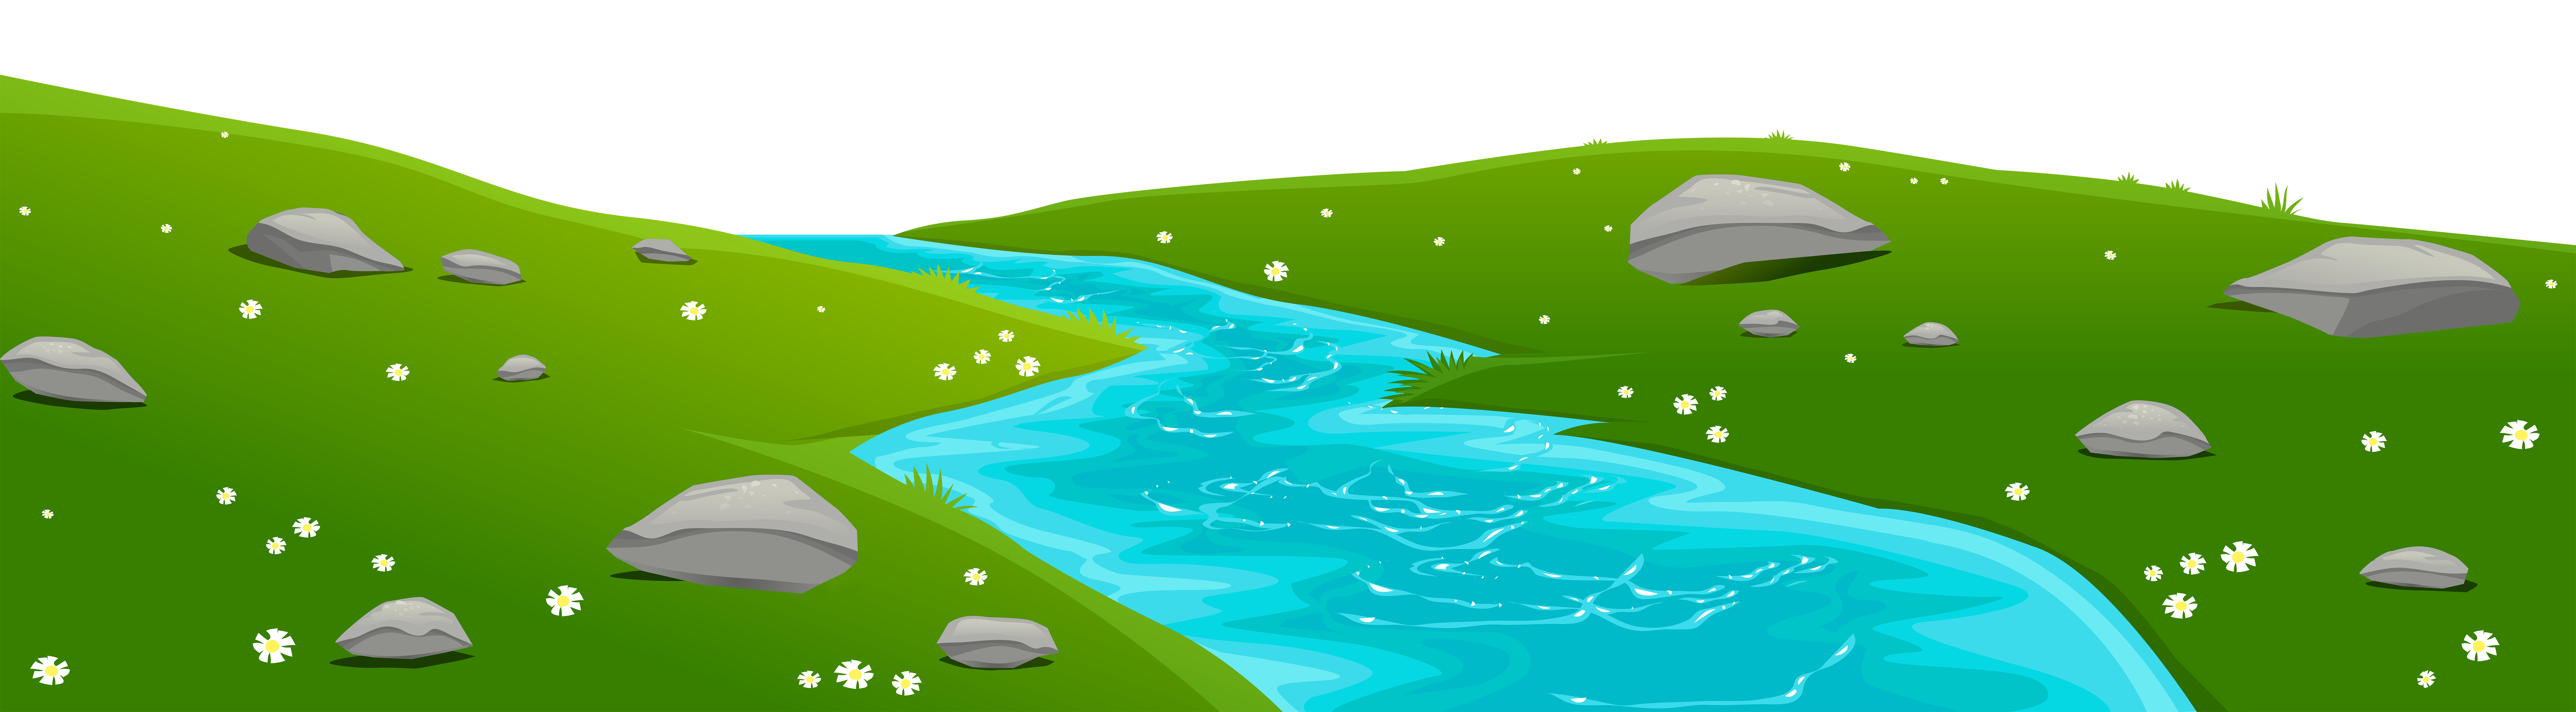 River cover transparent png. Clipart grass ground